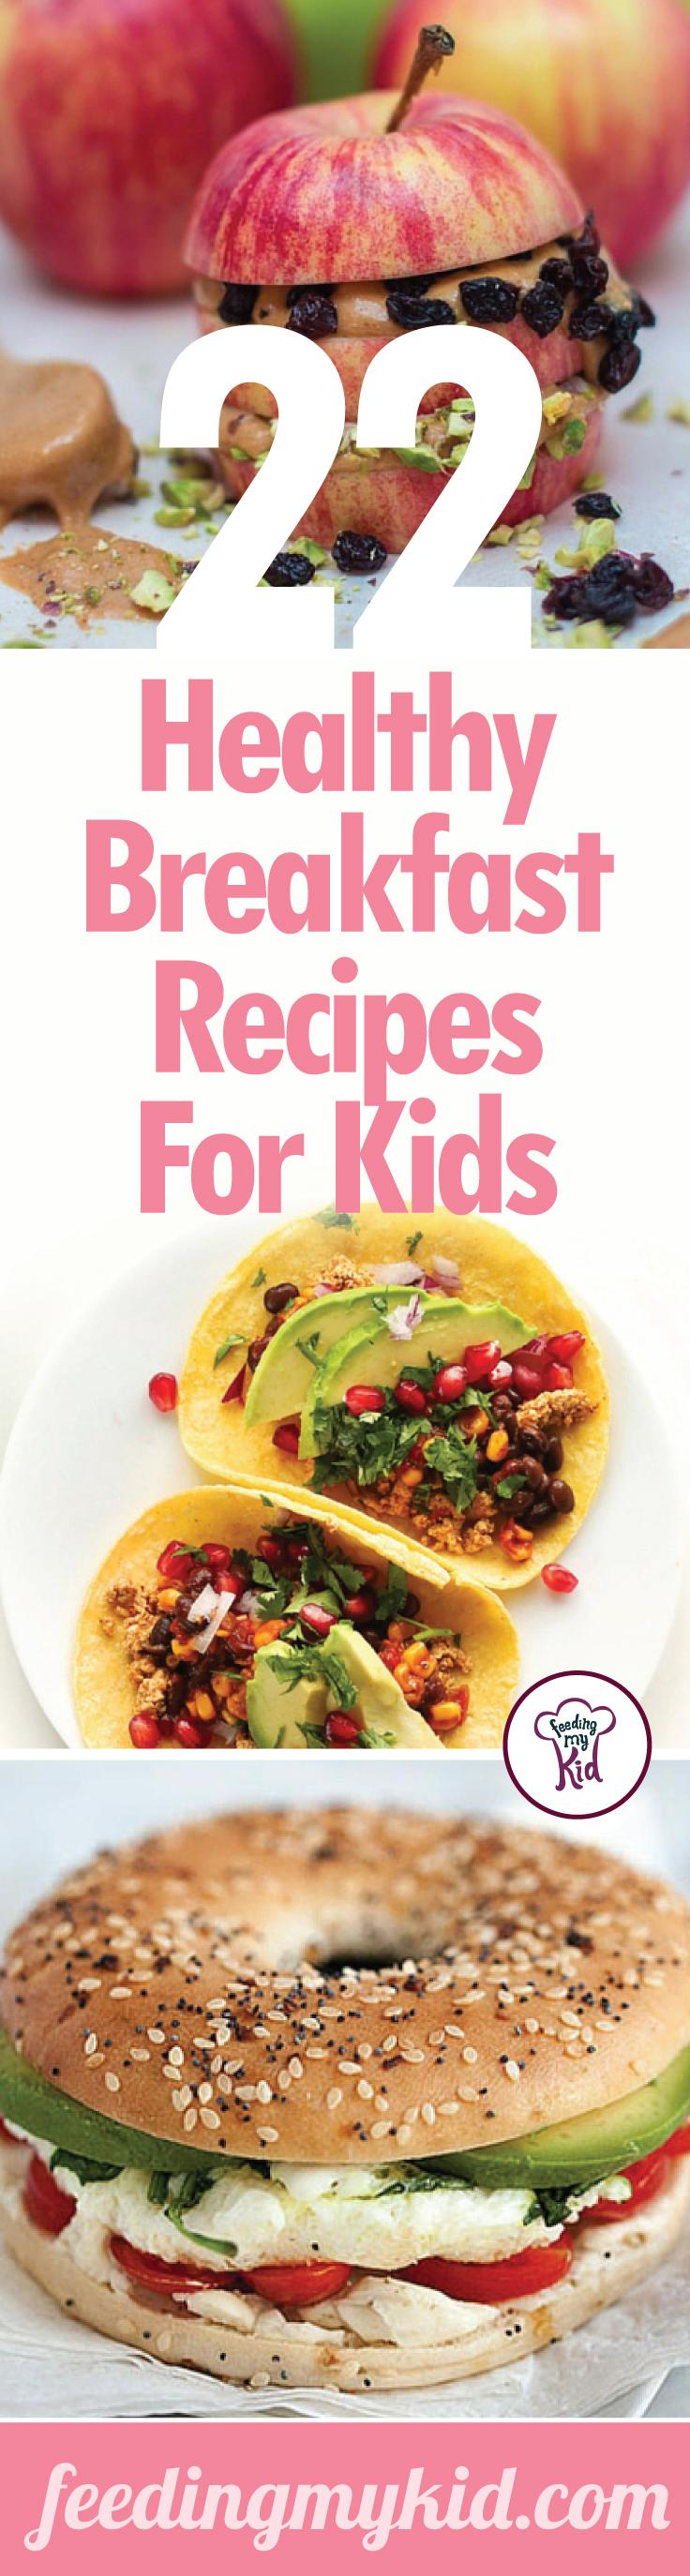 22 Healthy Breakfast Recipes For Kids